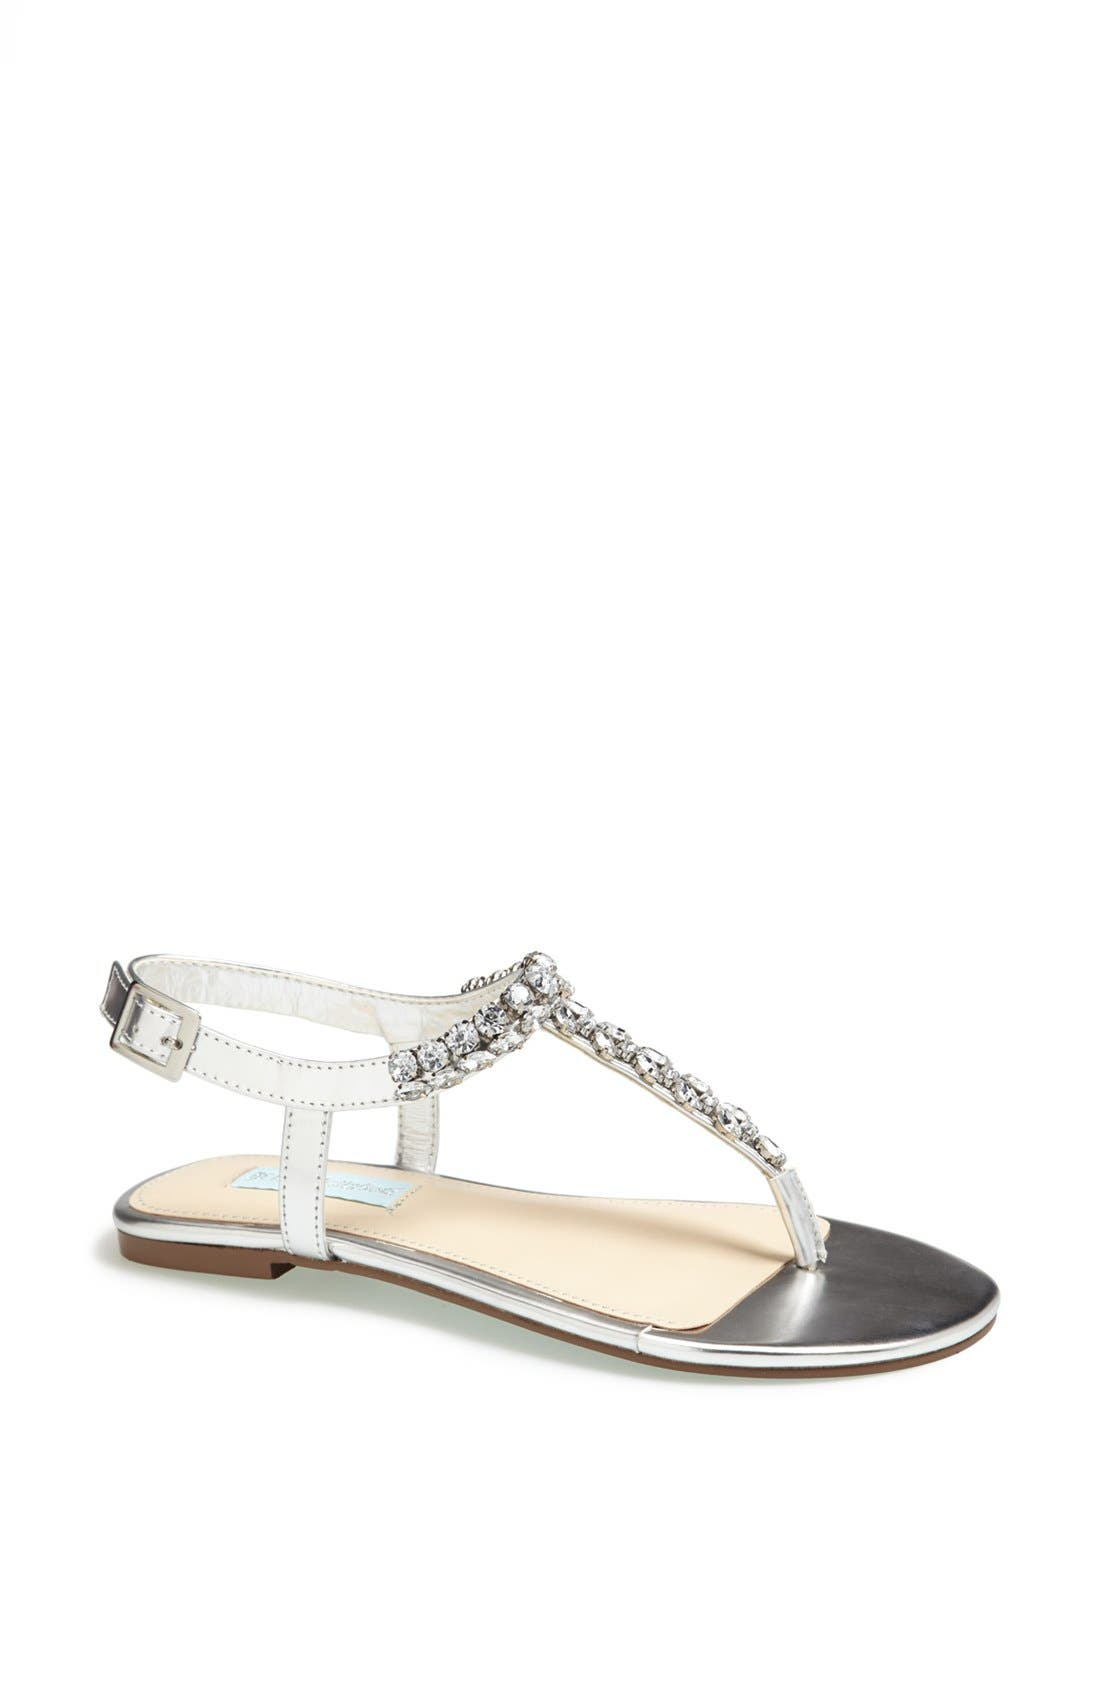 Main Image - Blue by Betsey Johnson 'Spark' Crystal Embellished Thong Sandal